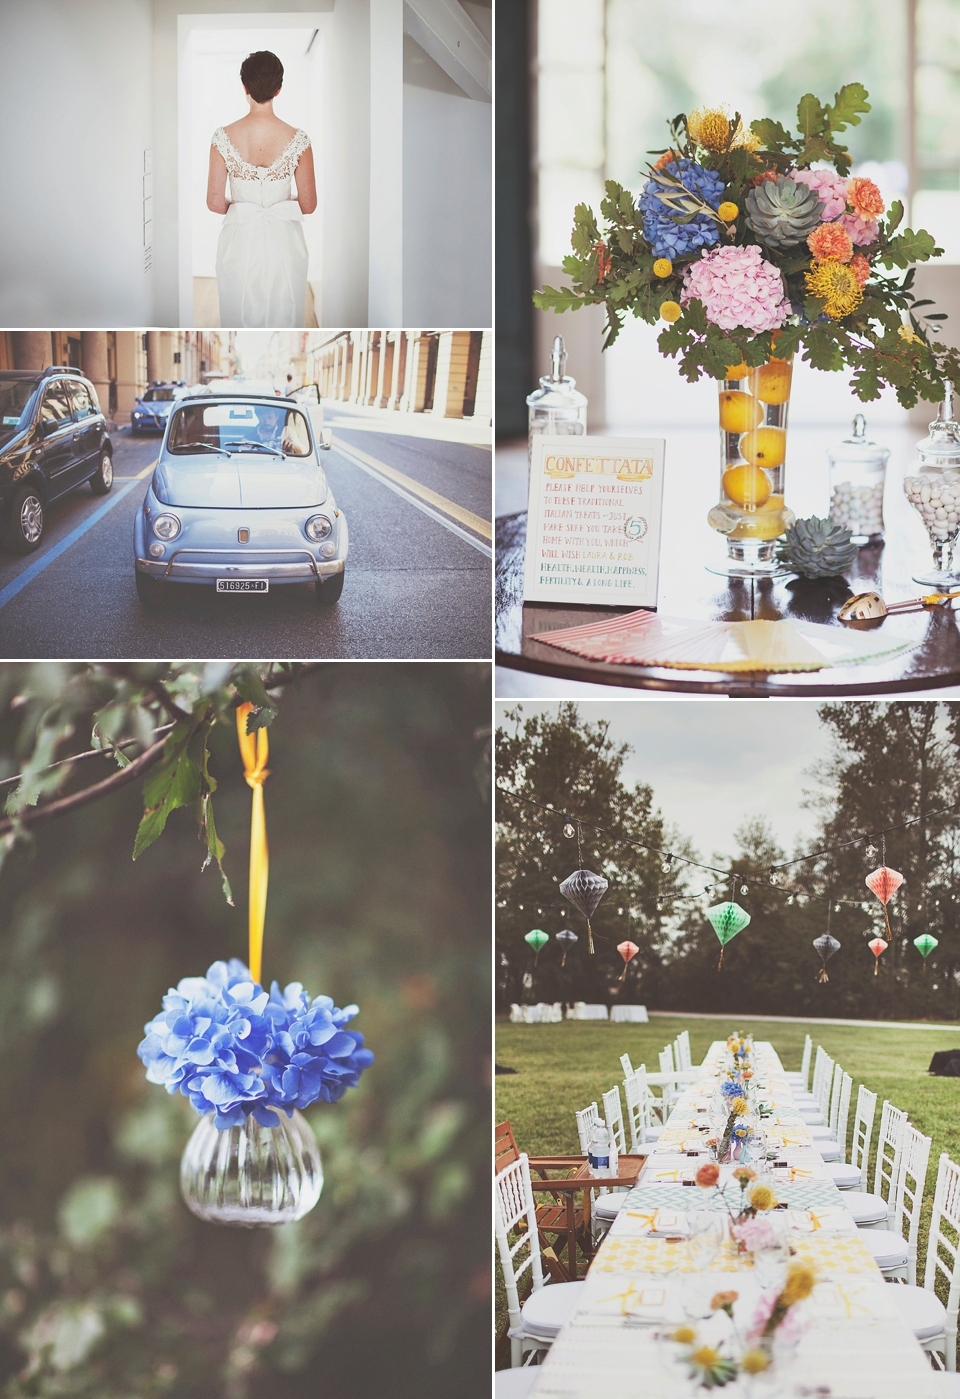 A 1960's and Film Inspired Intimate Italian Wedding (Weddings )